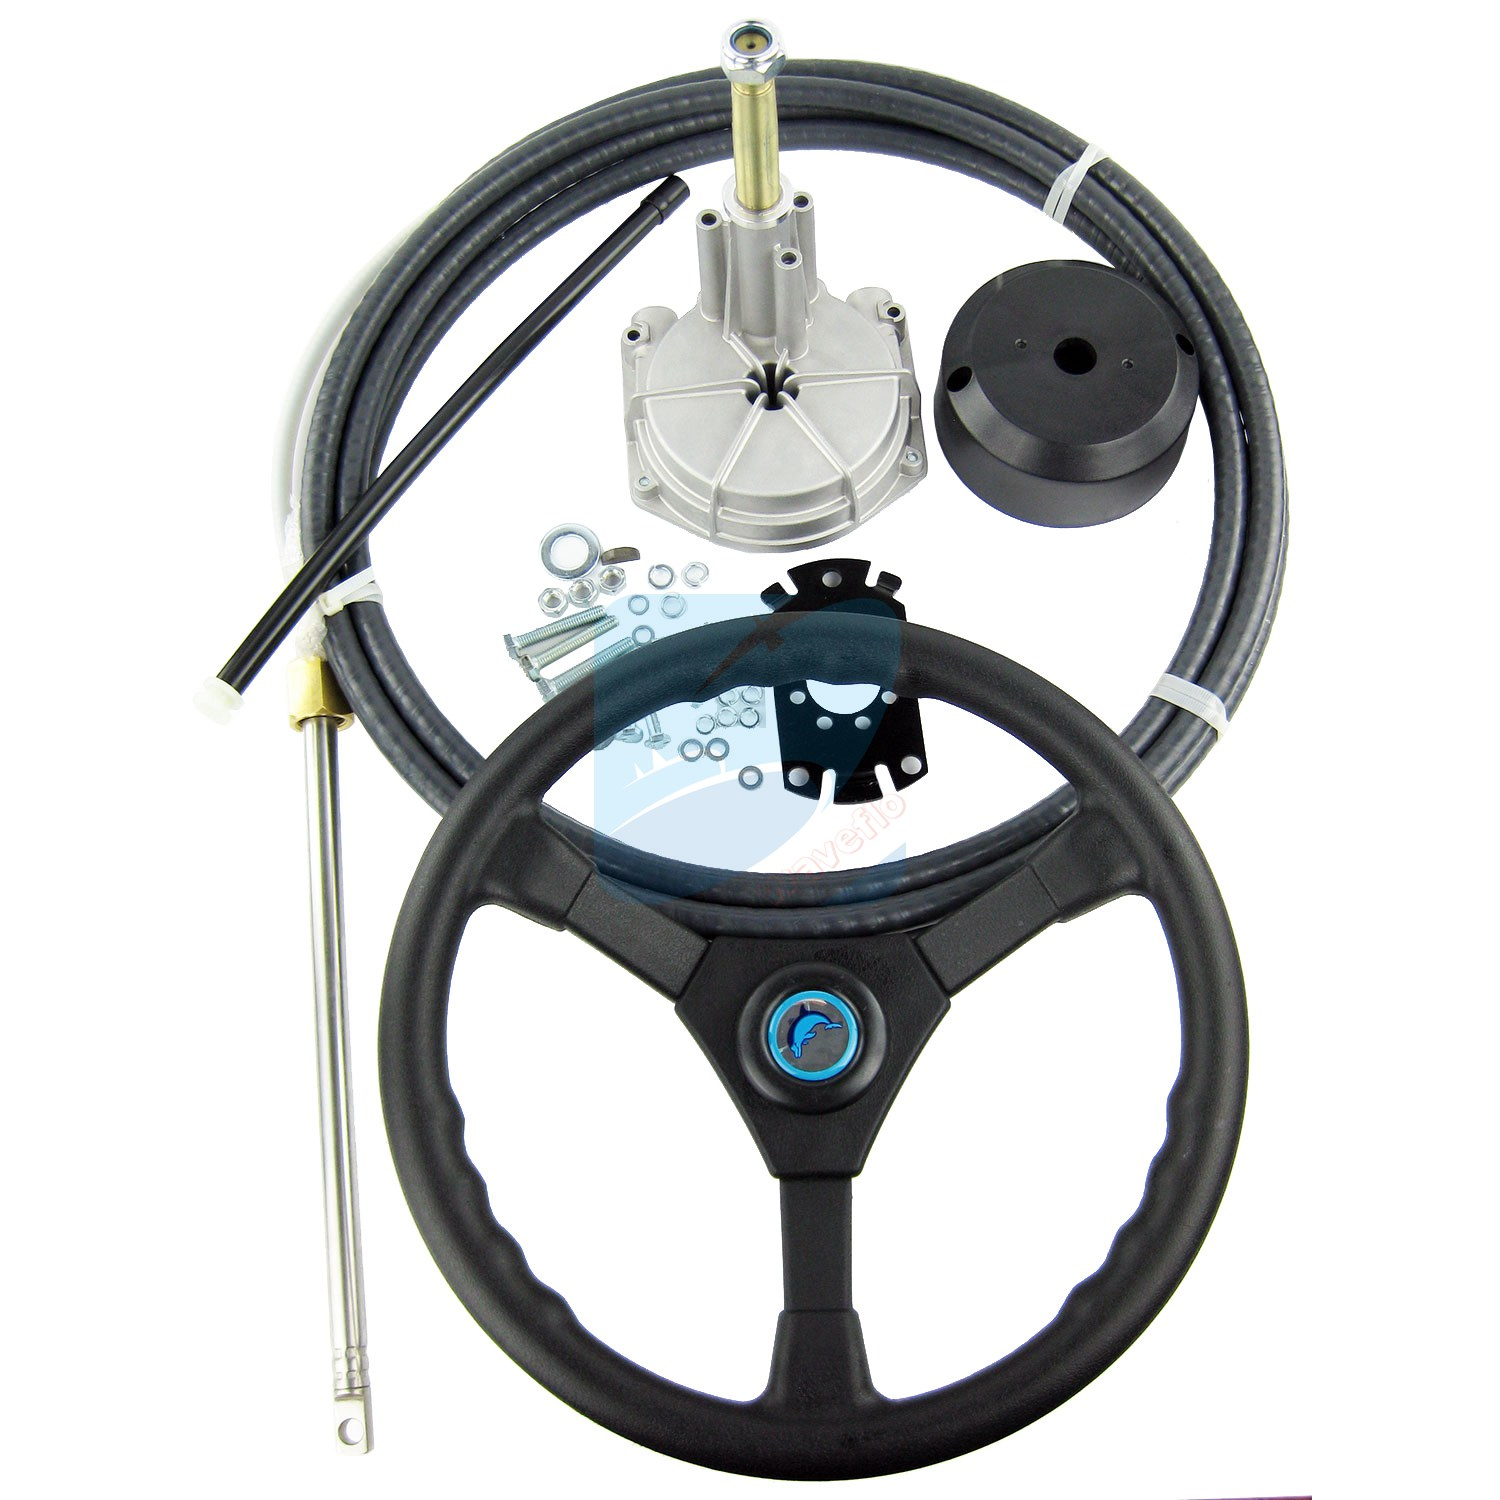 купить 15FT Single Turbine Rotary Outboard Steering System W/ Boat Steering Cable Wheel по цене 10872.8 рублей